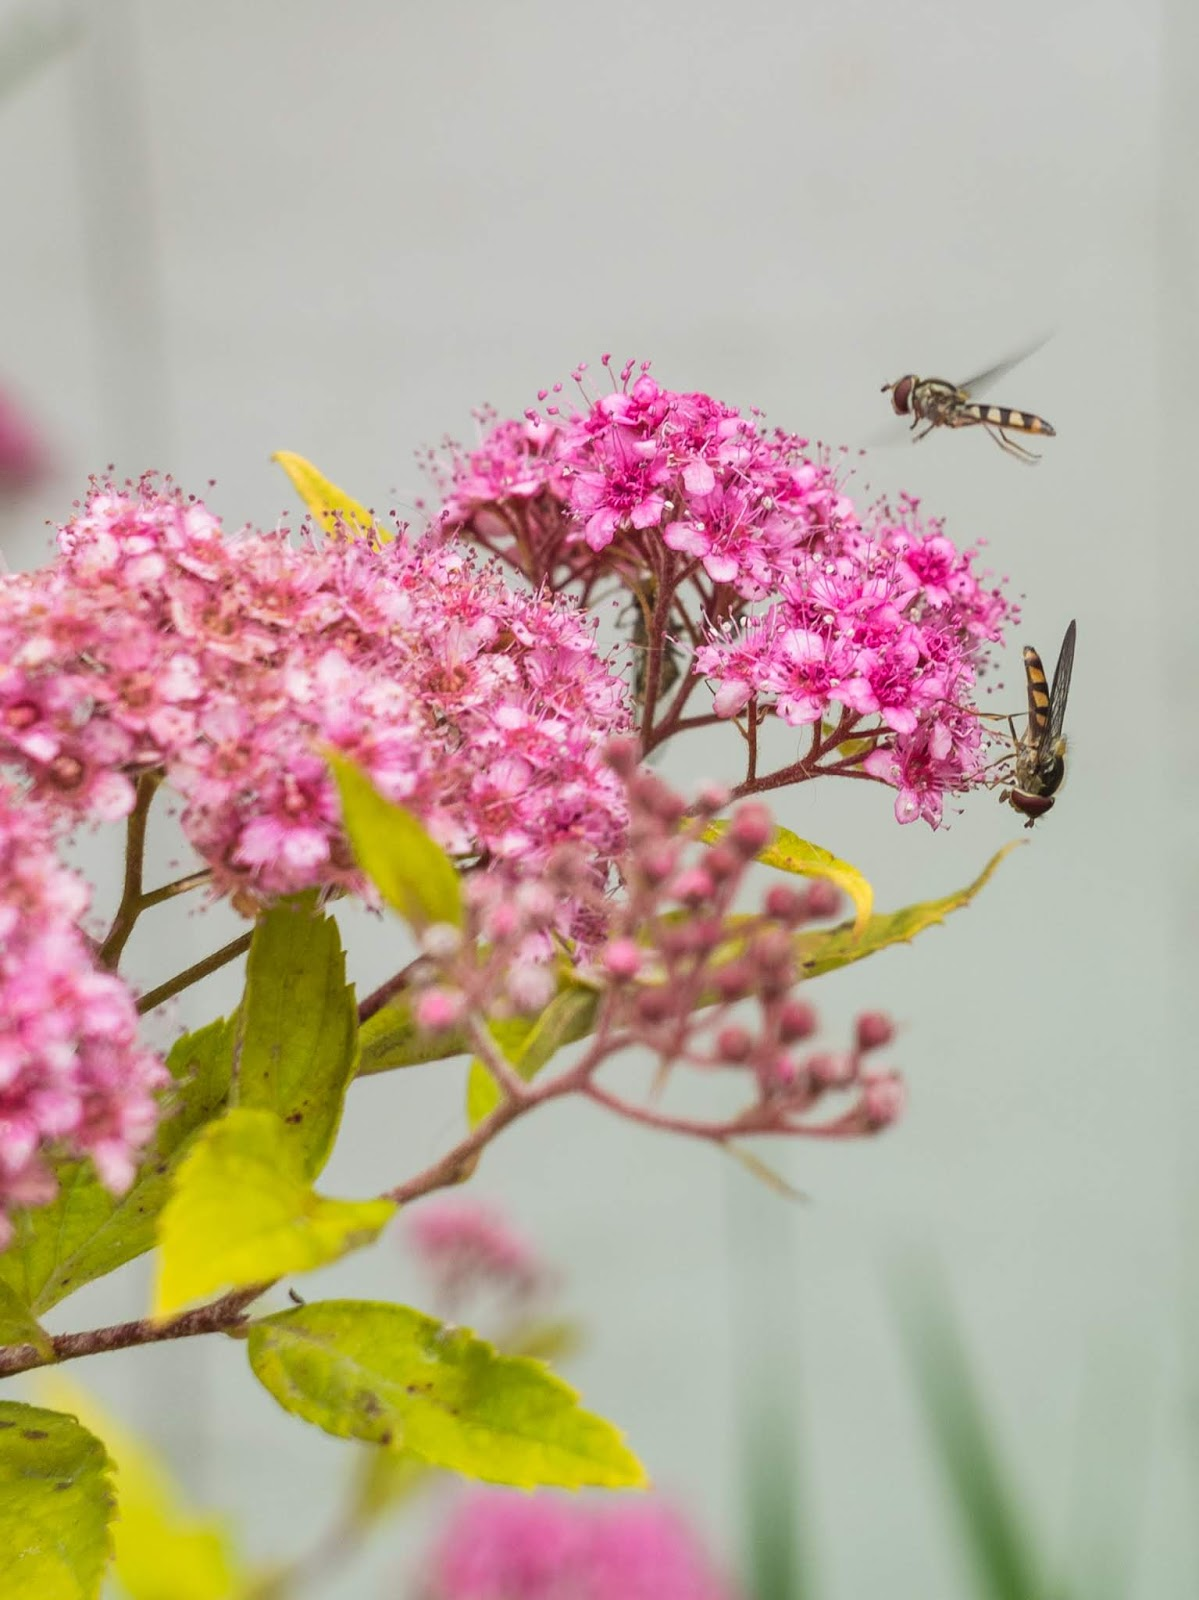 A close up of two Hover Flies on and around pink Spirea flowers.